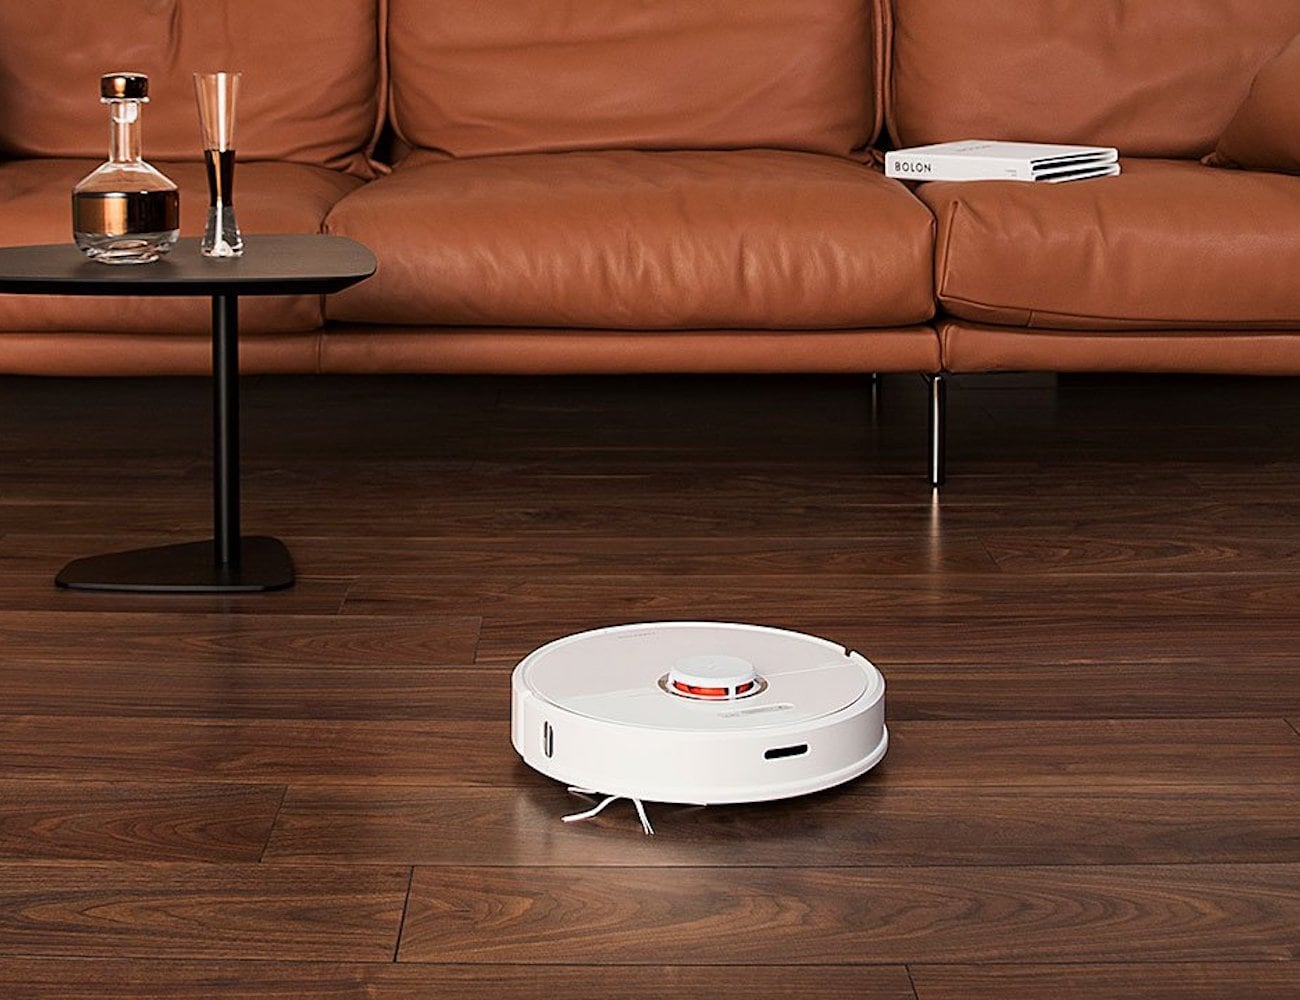 Roborock S6 Smart Robot Vacuum Mopper plans routes to clean your home faster